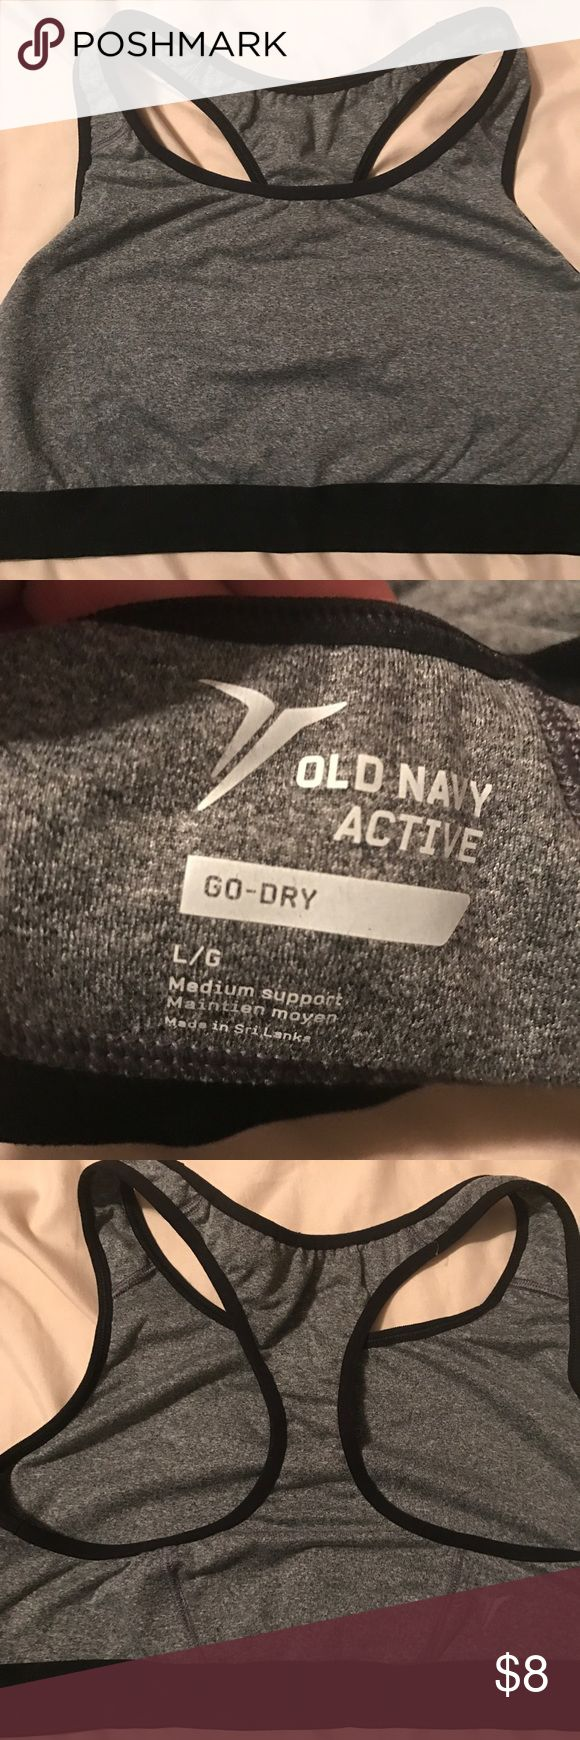 Old navy sports bra worn 2x Only worn two times very good condition Old Navy Intimates & Sleepwear Bras